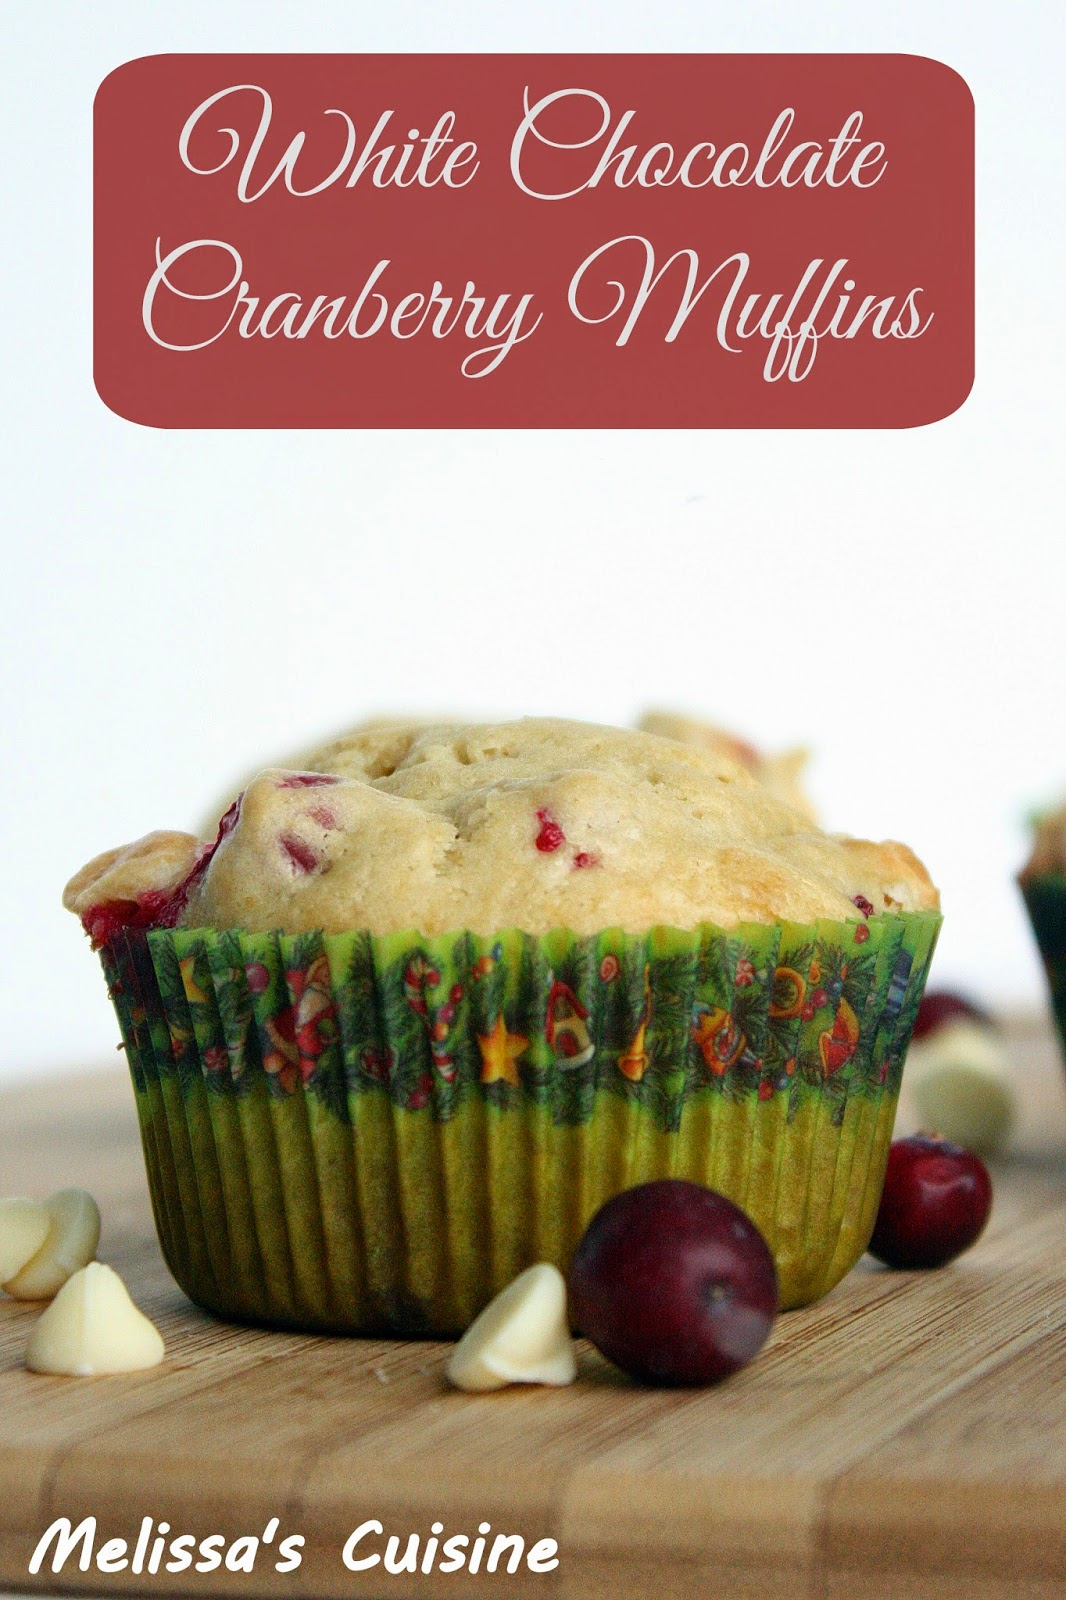 Melissa's Cuisine: White Chocolate Cranberry Muffins